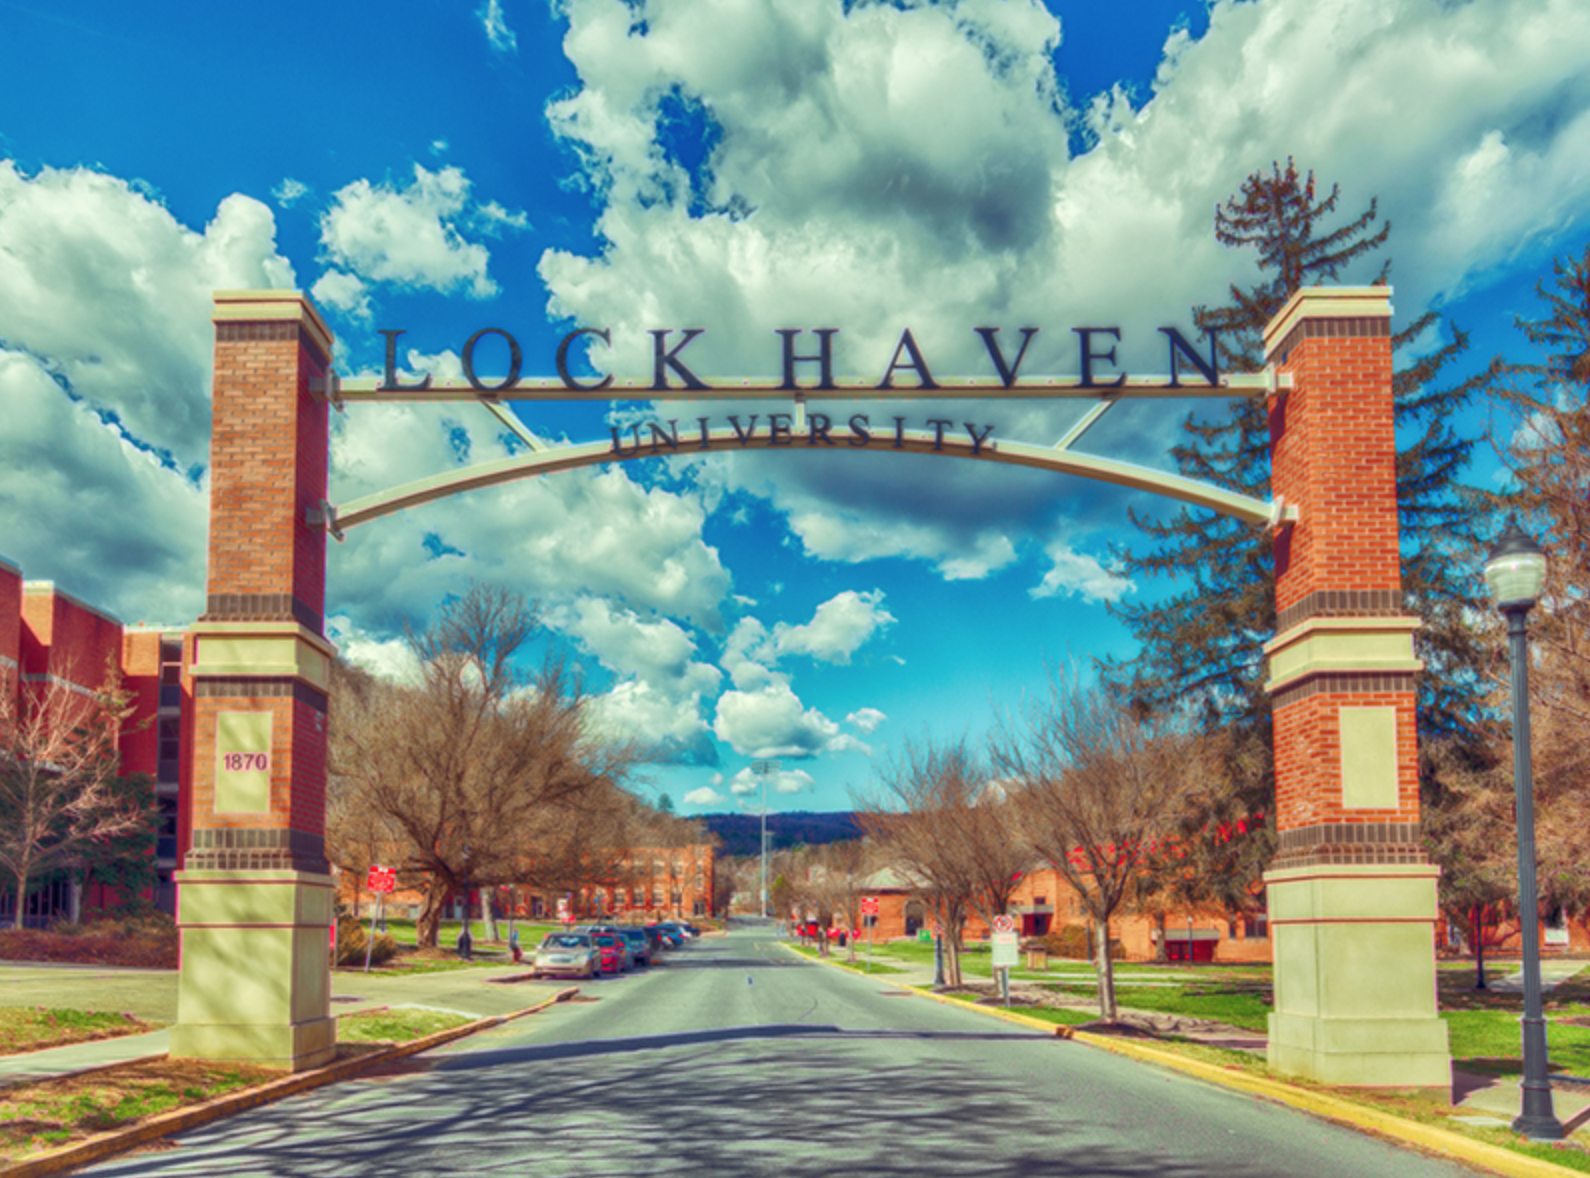 Top 10 Buildings You Must Know at Lock Haven University